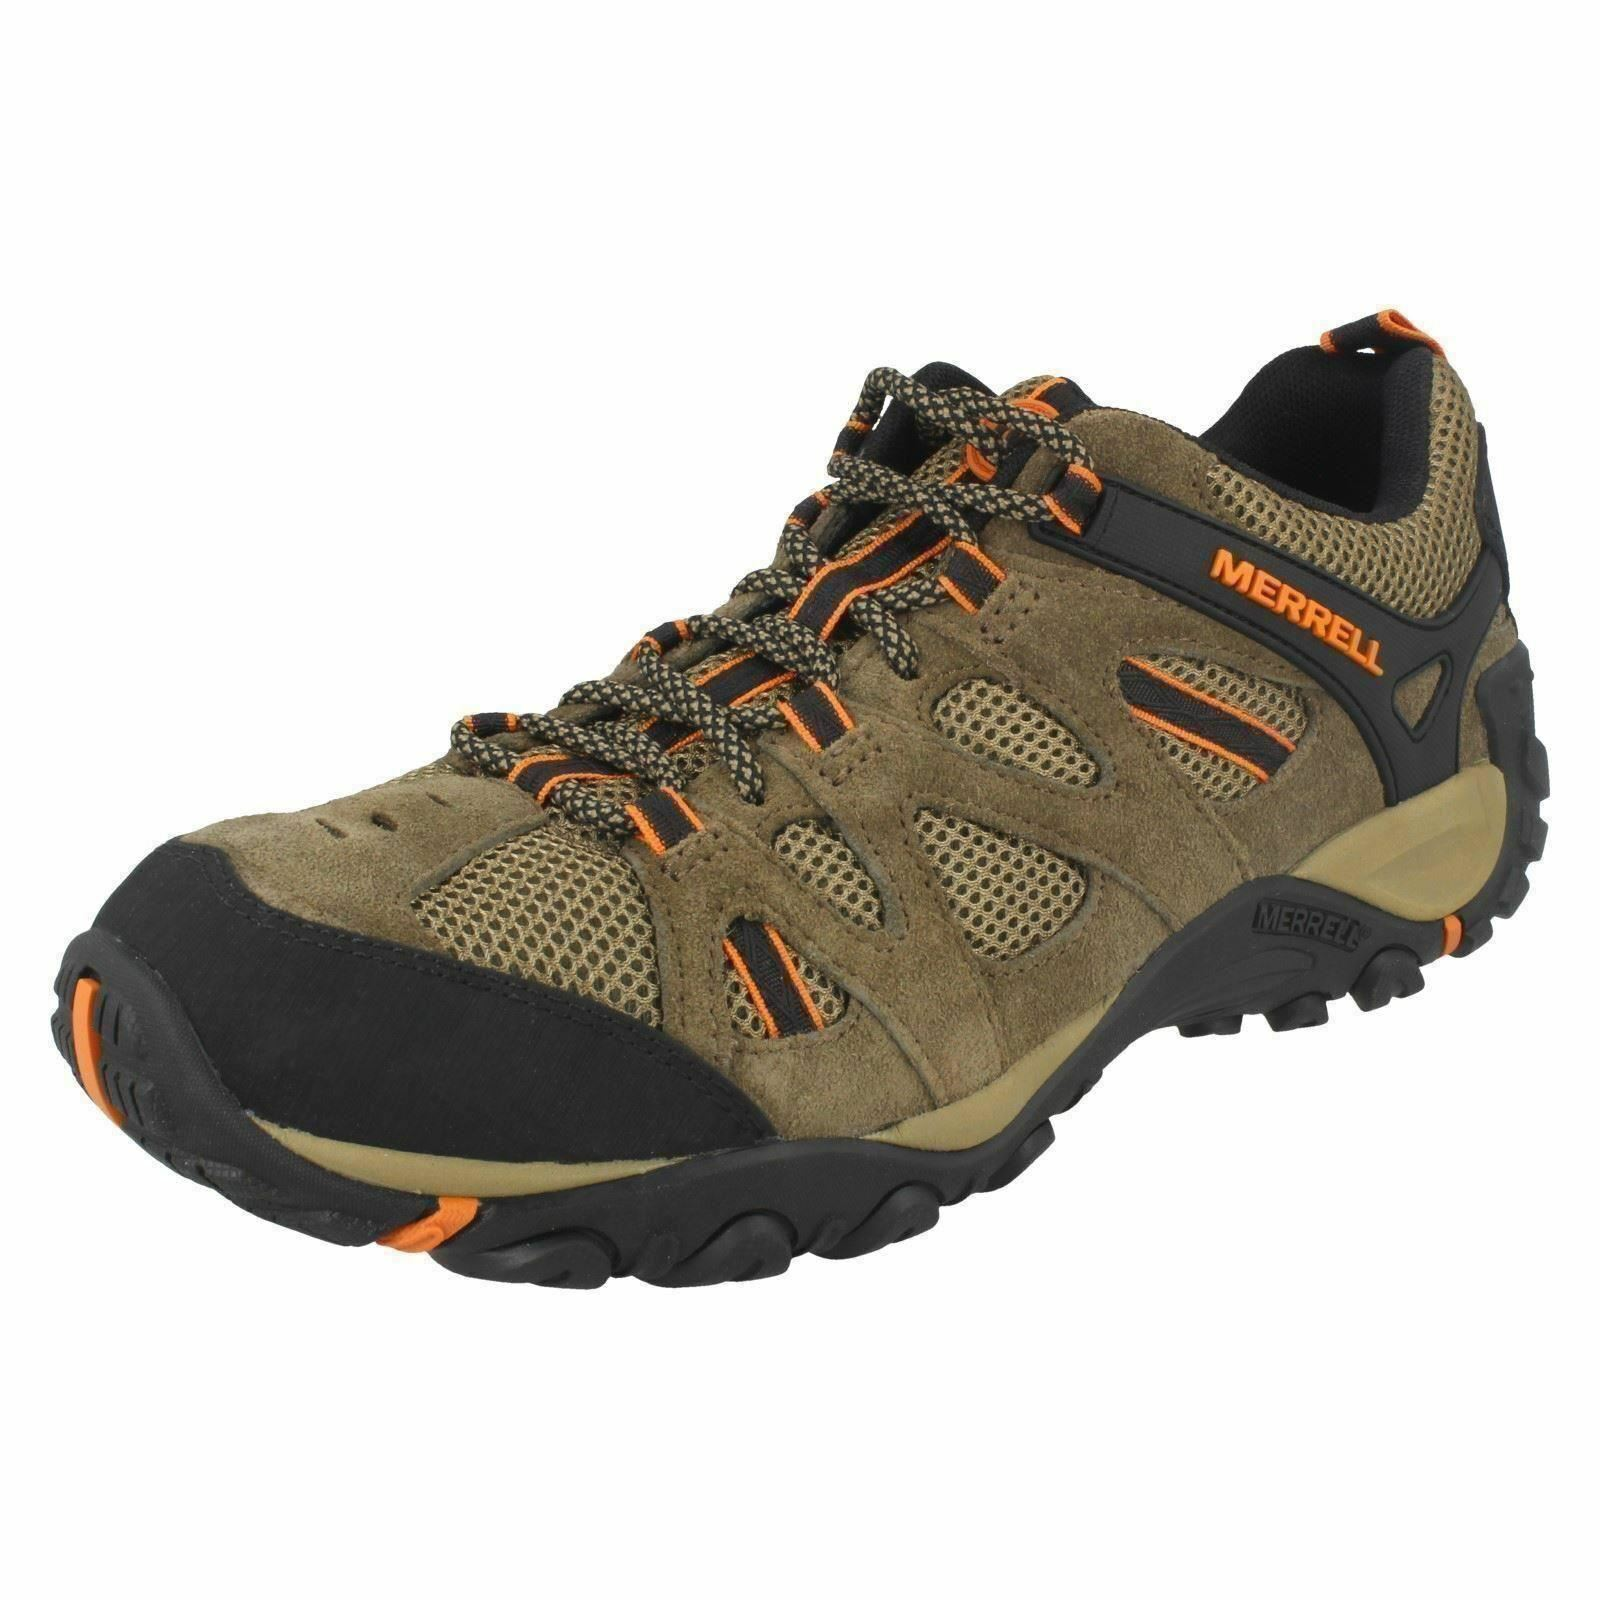 574b793f Mens Merrell Vent J343718C Trainers Walking Casual Leather Suede ...